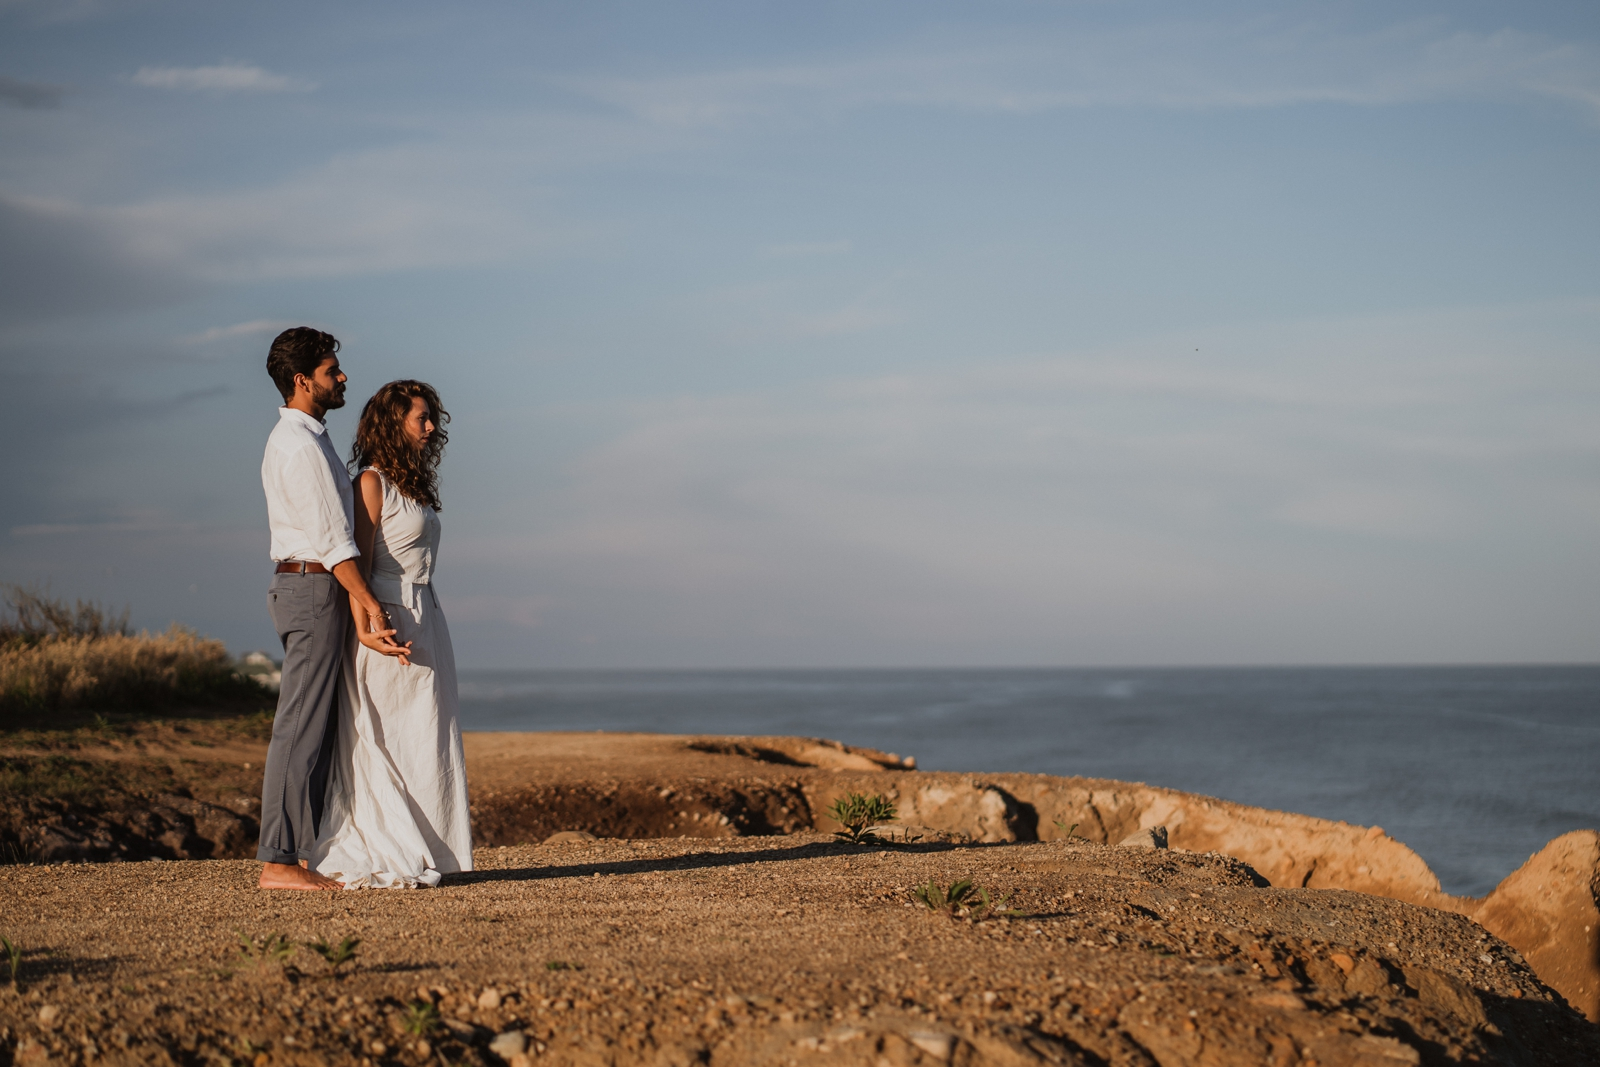 JJP_Nikki & Bud_Shadmoor_Montauk_NY_Cliff Engagement Session27.jpg_blog.jpg